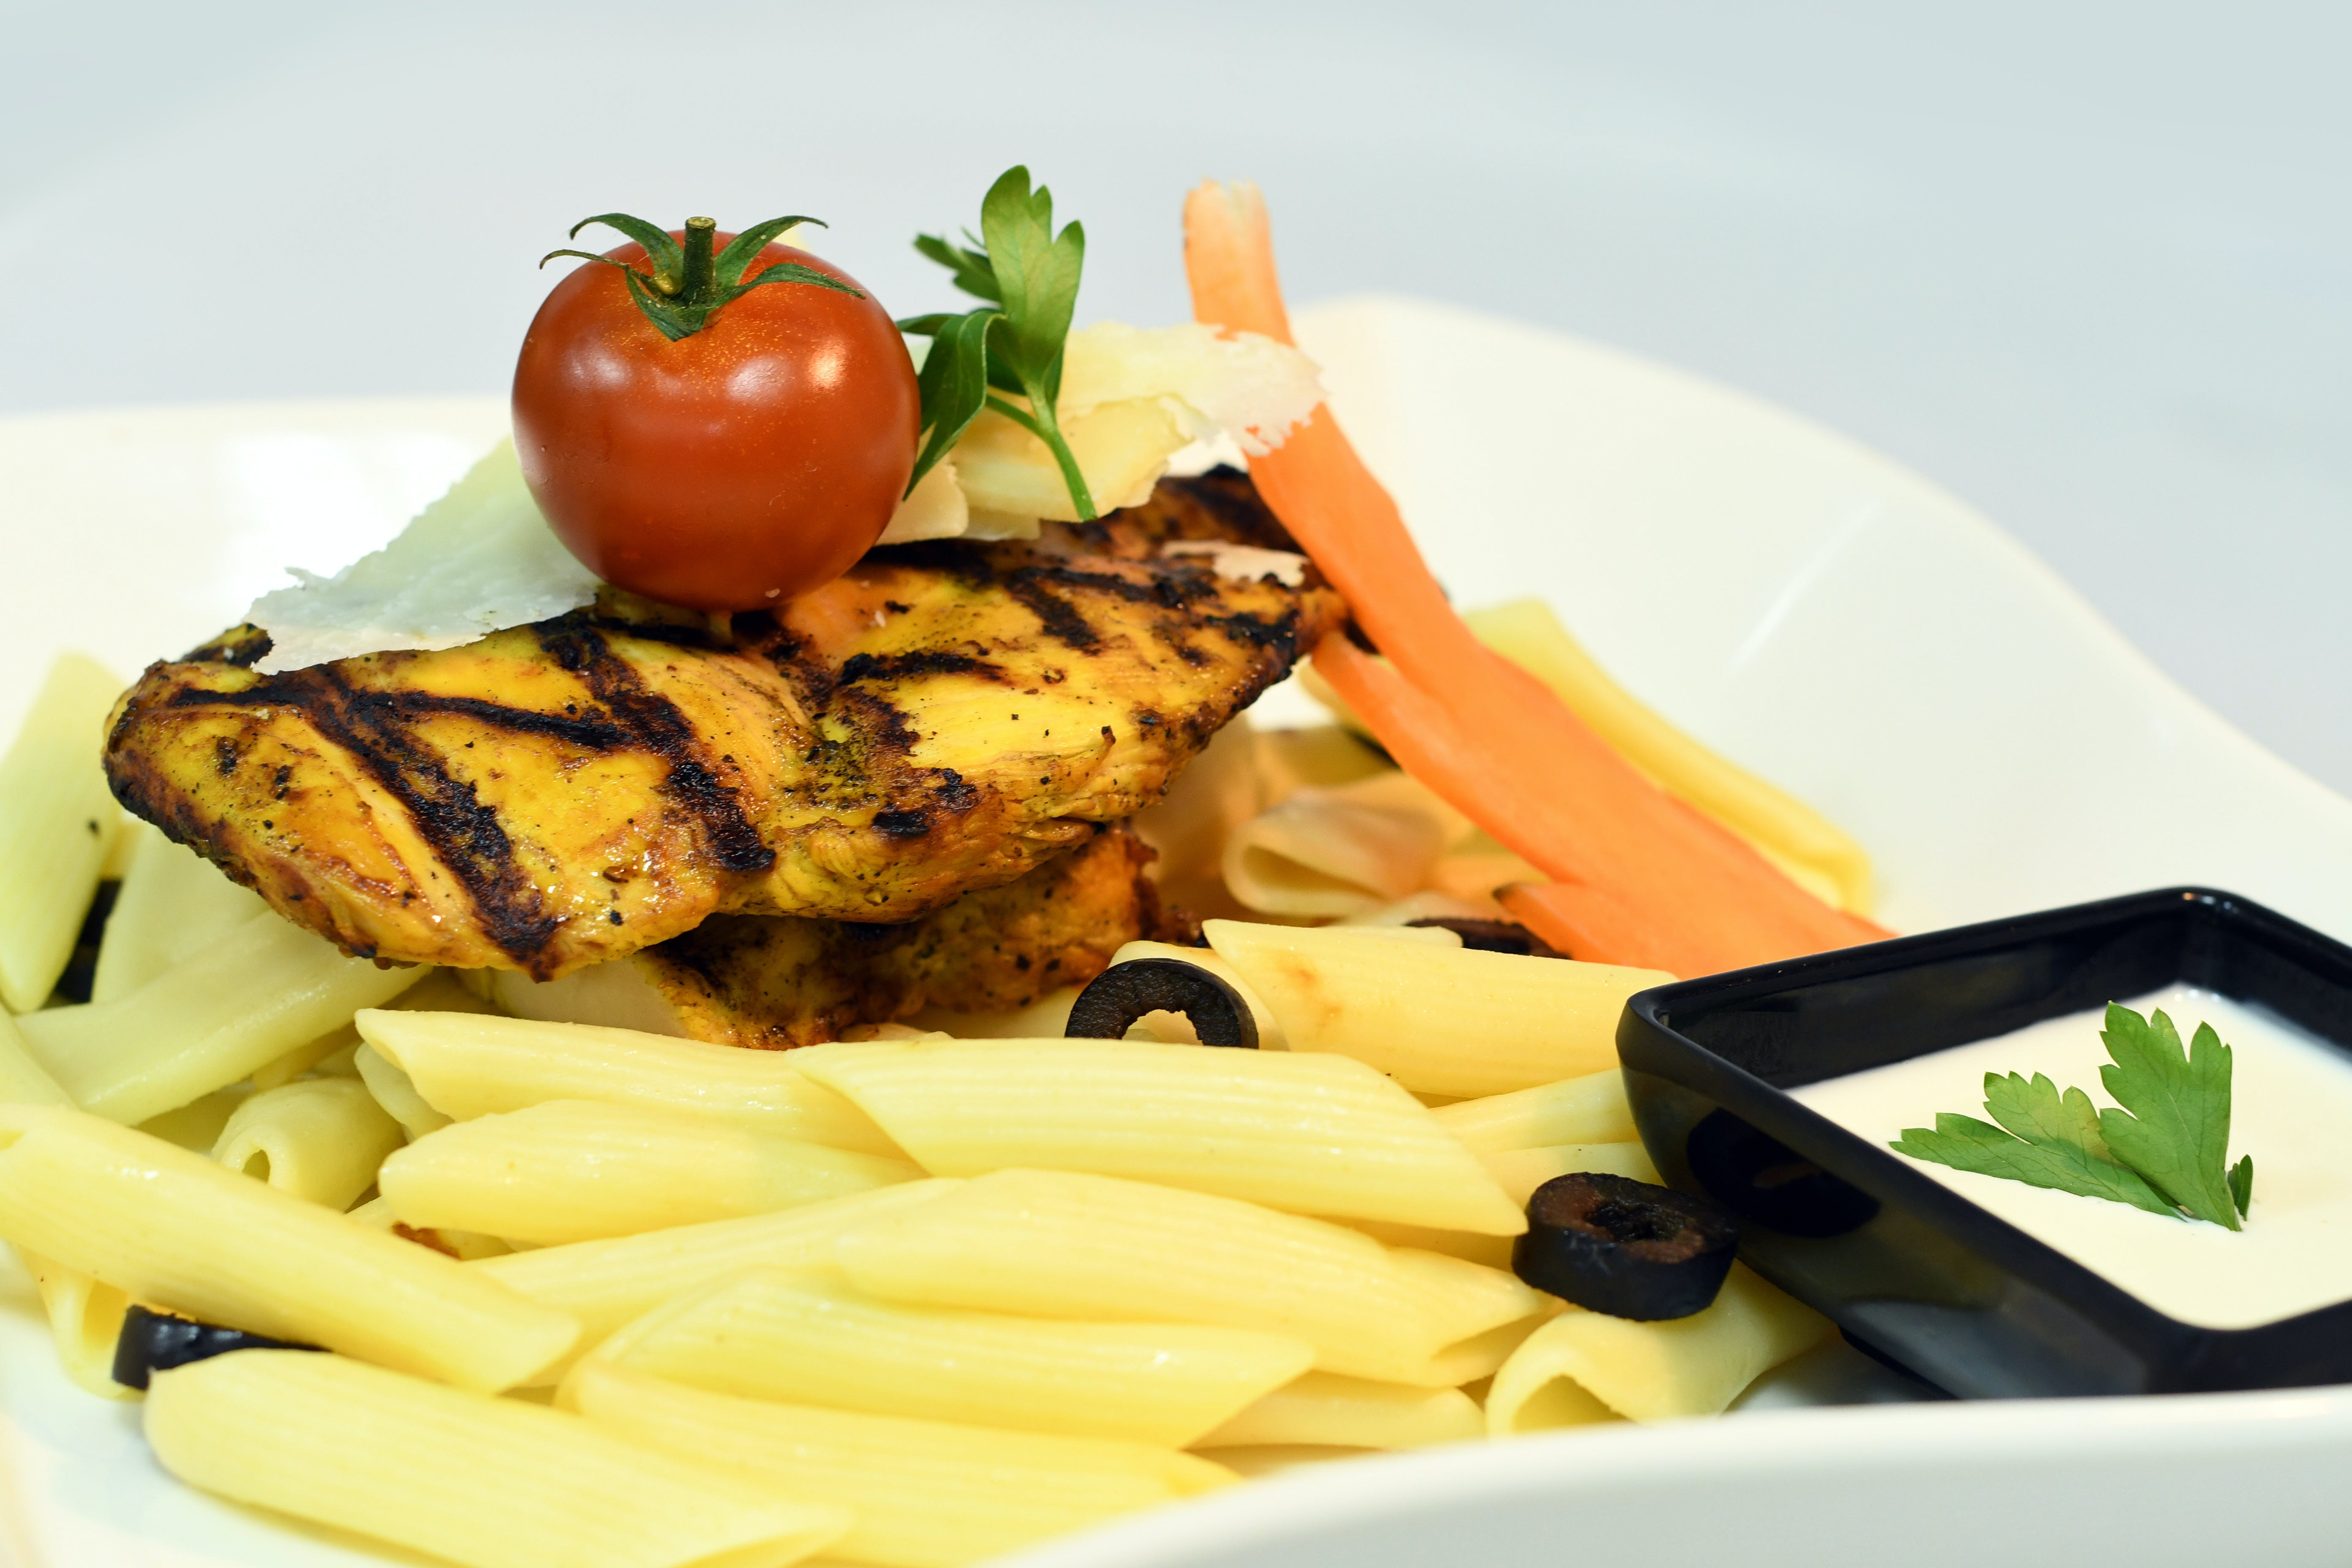 Macaroni With Tomato and Grilled Chicken